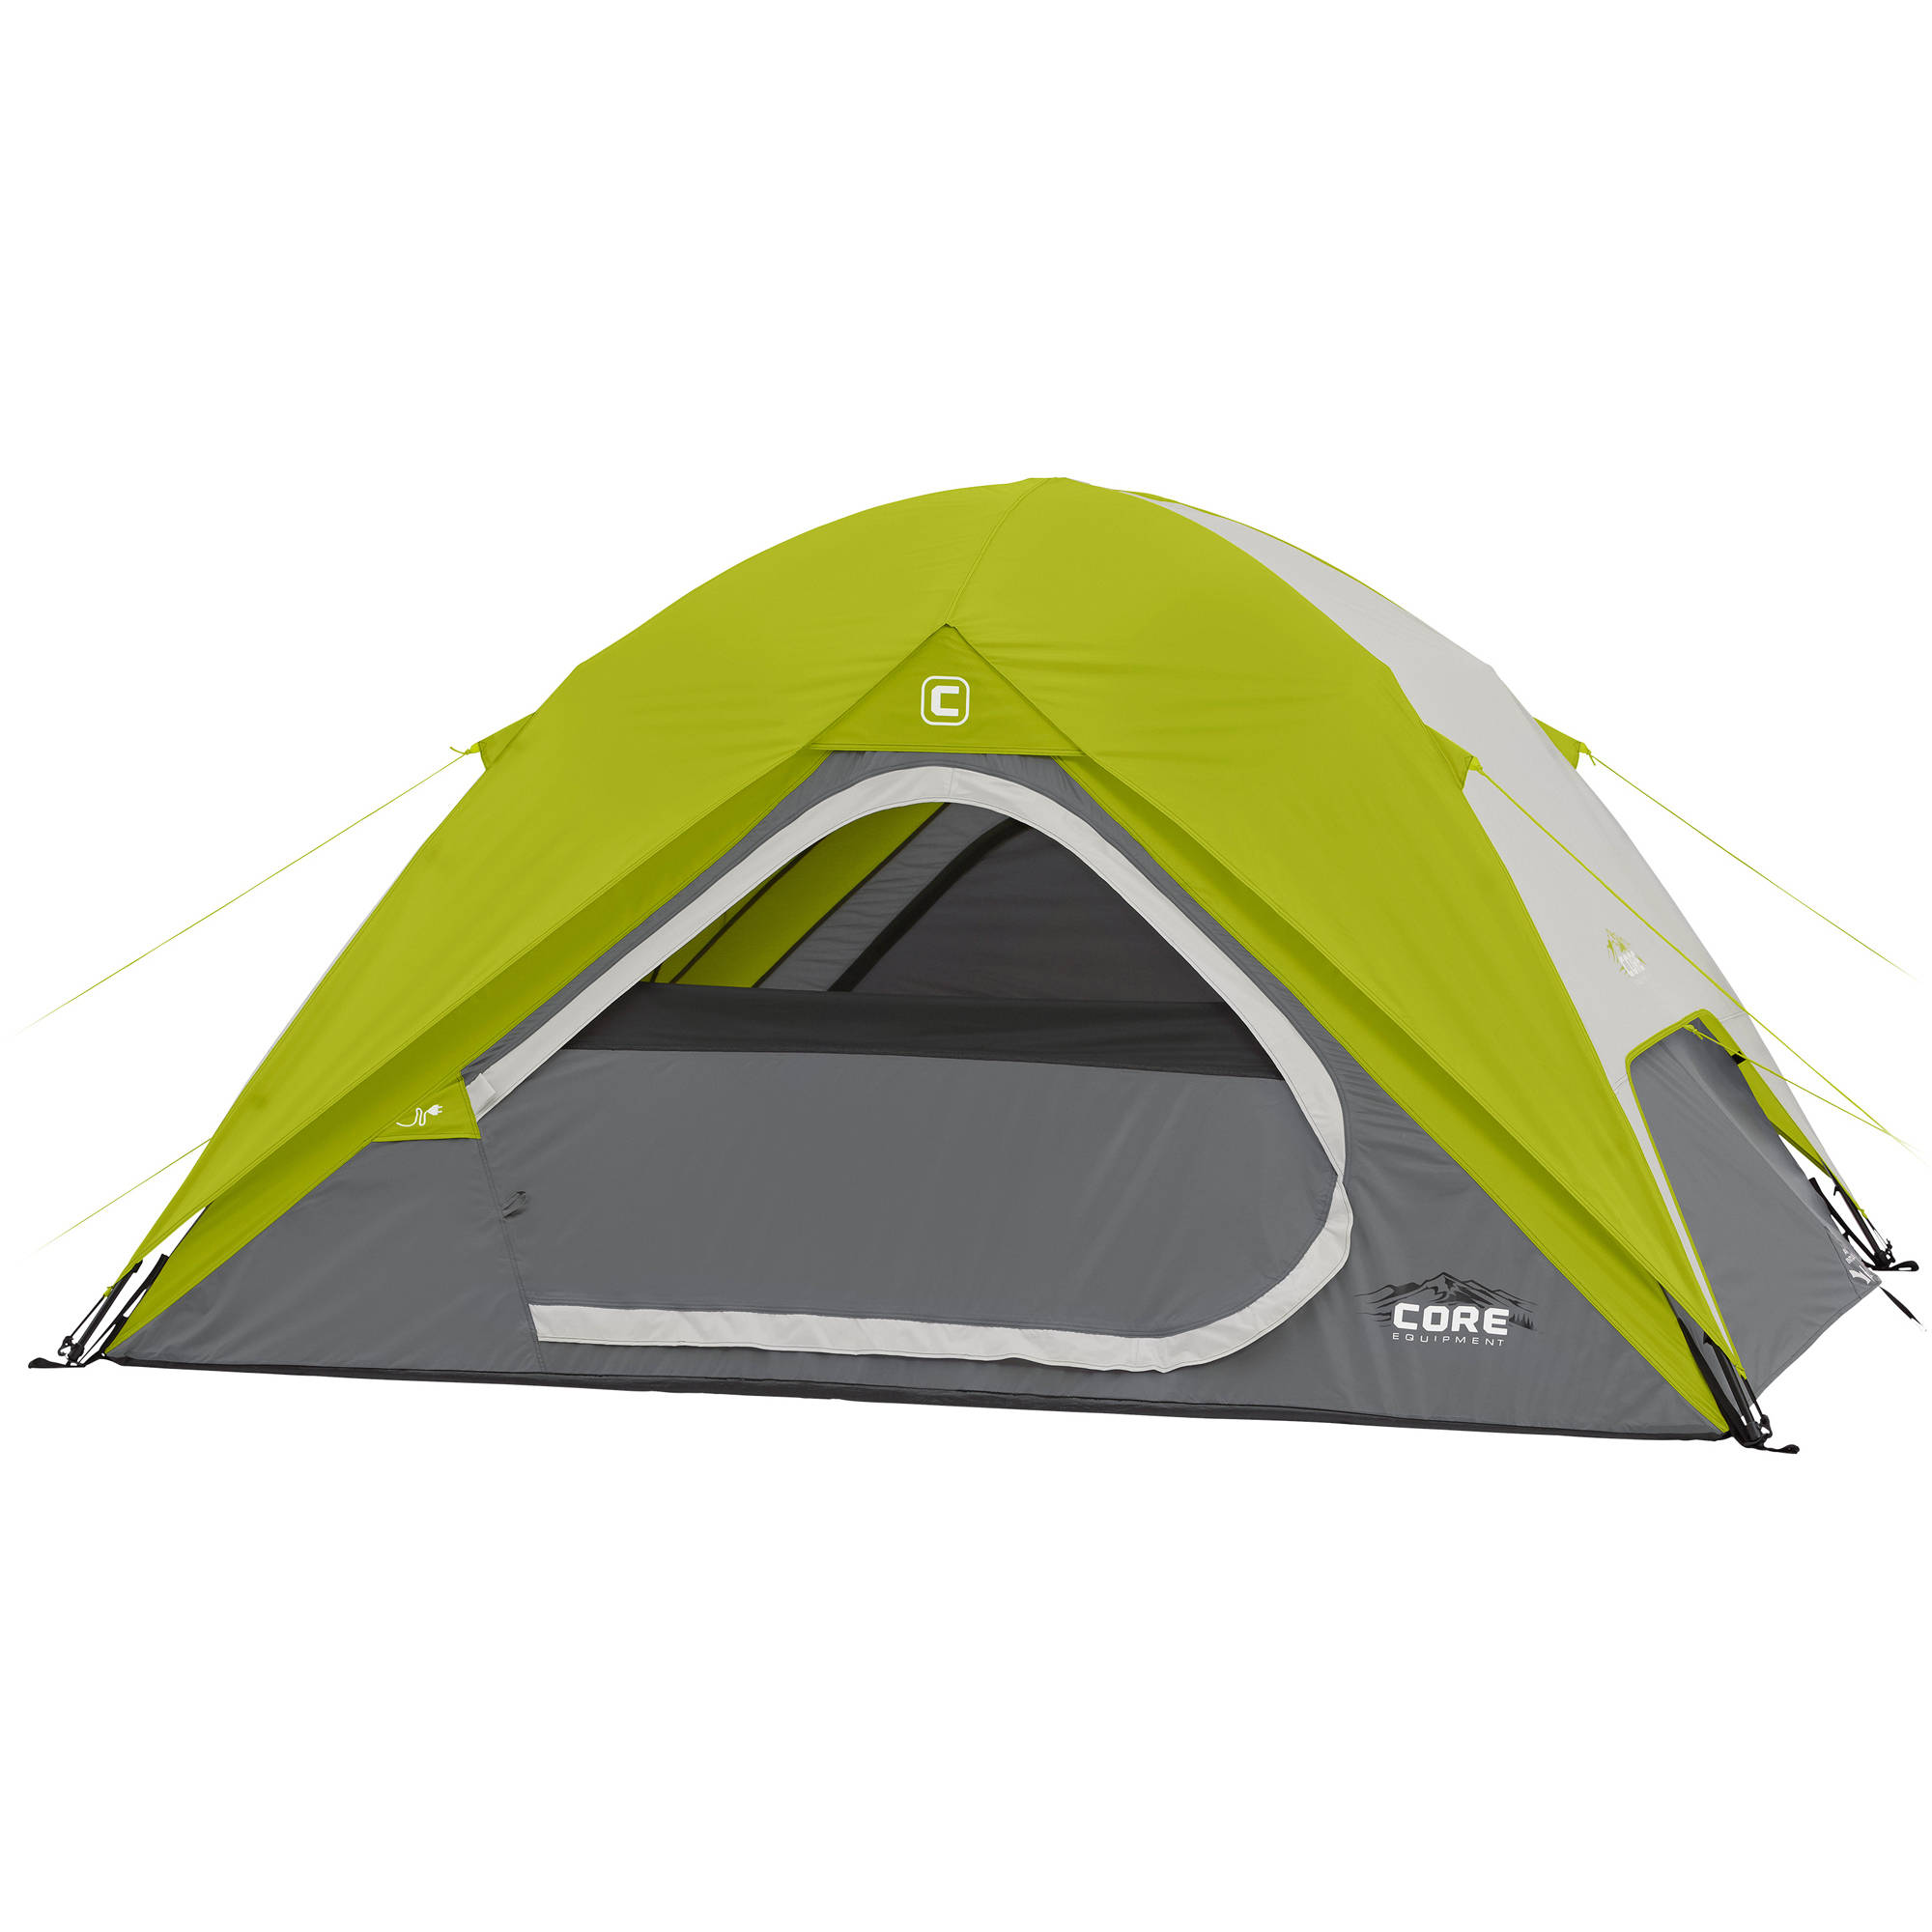 Core Equipment 9' x 7' Instant Dome Tent, Sleeps 4 by Elevate LLC